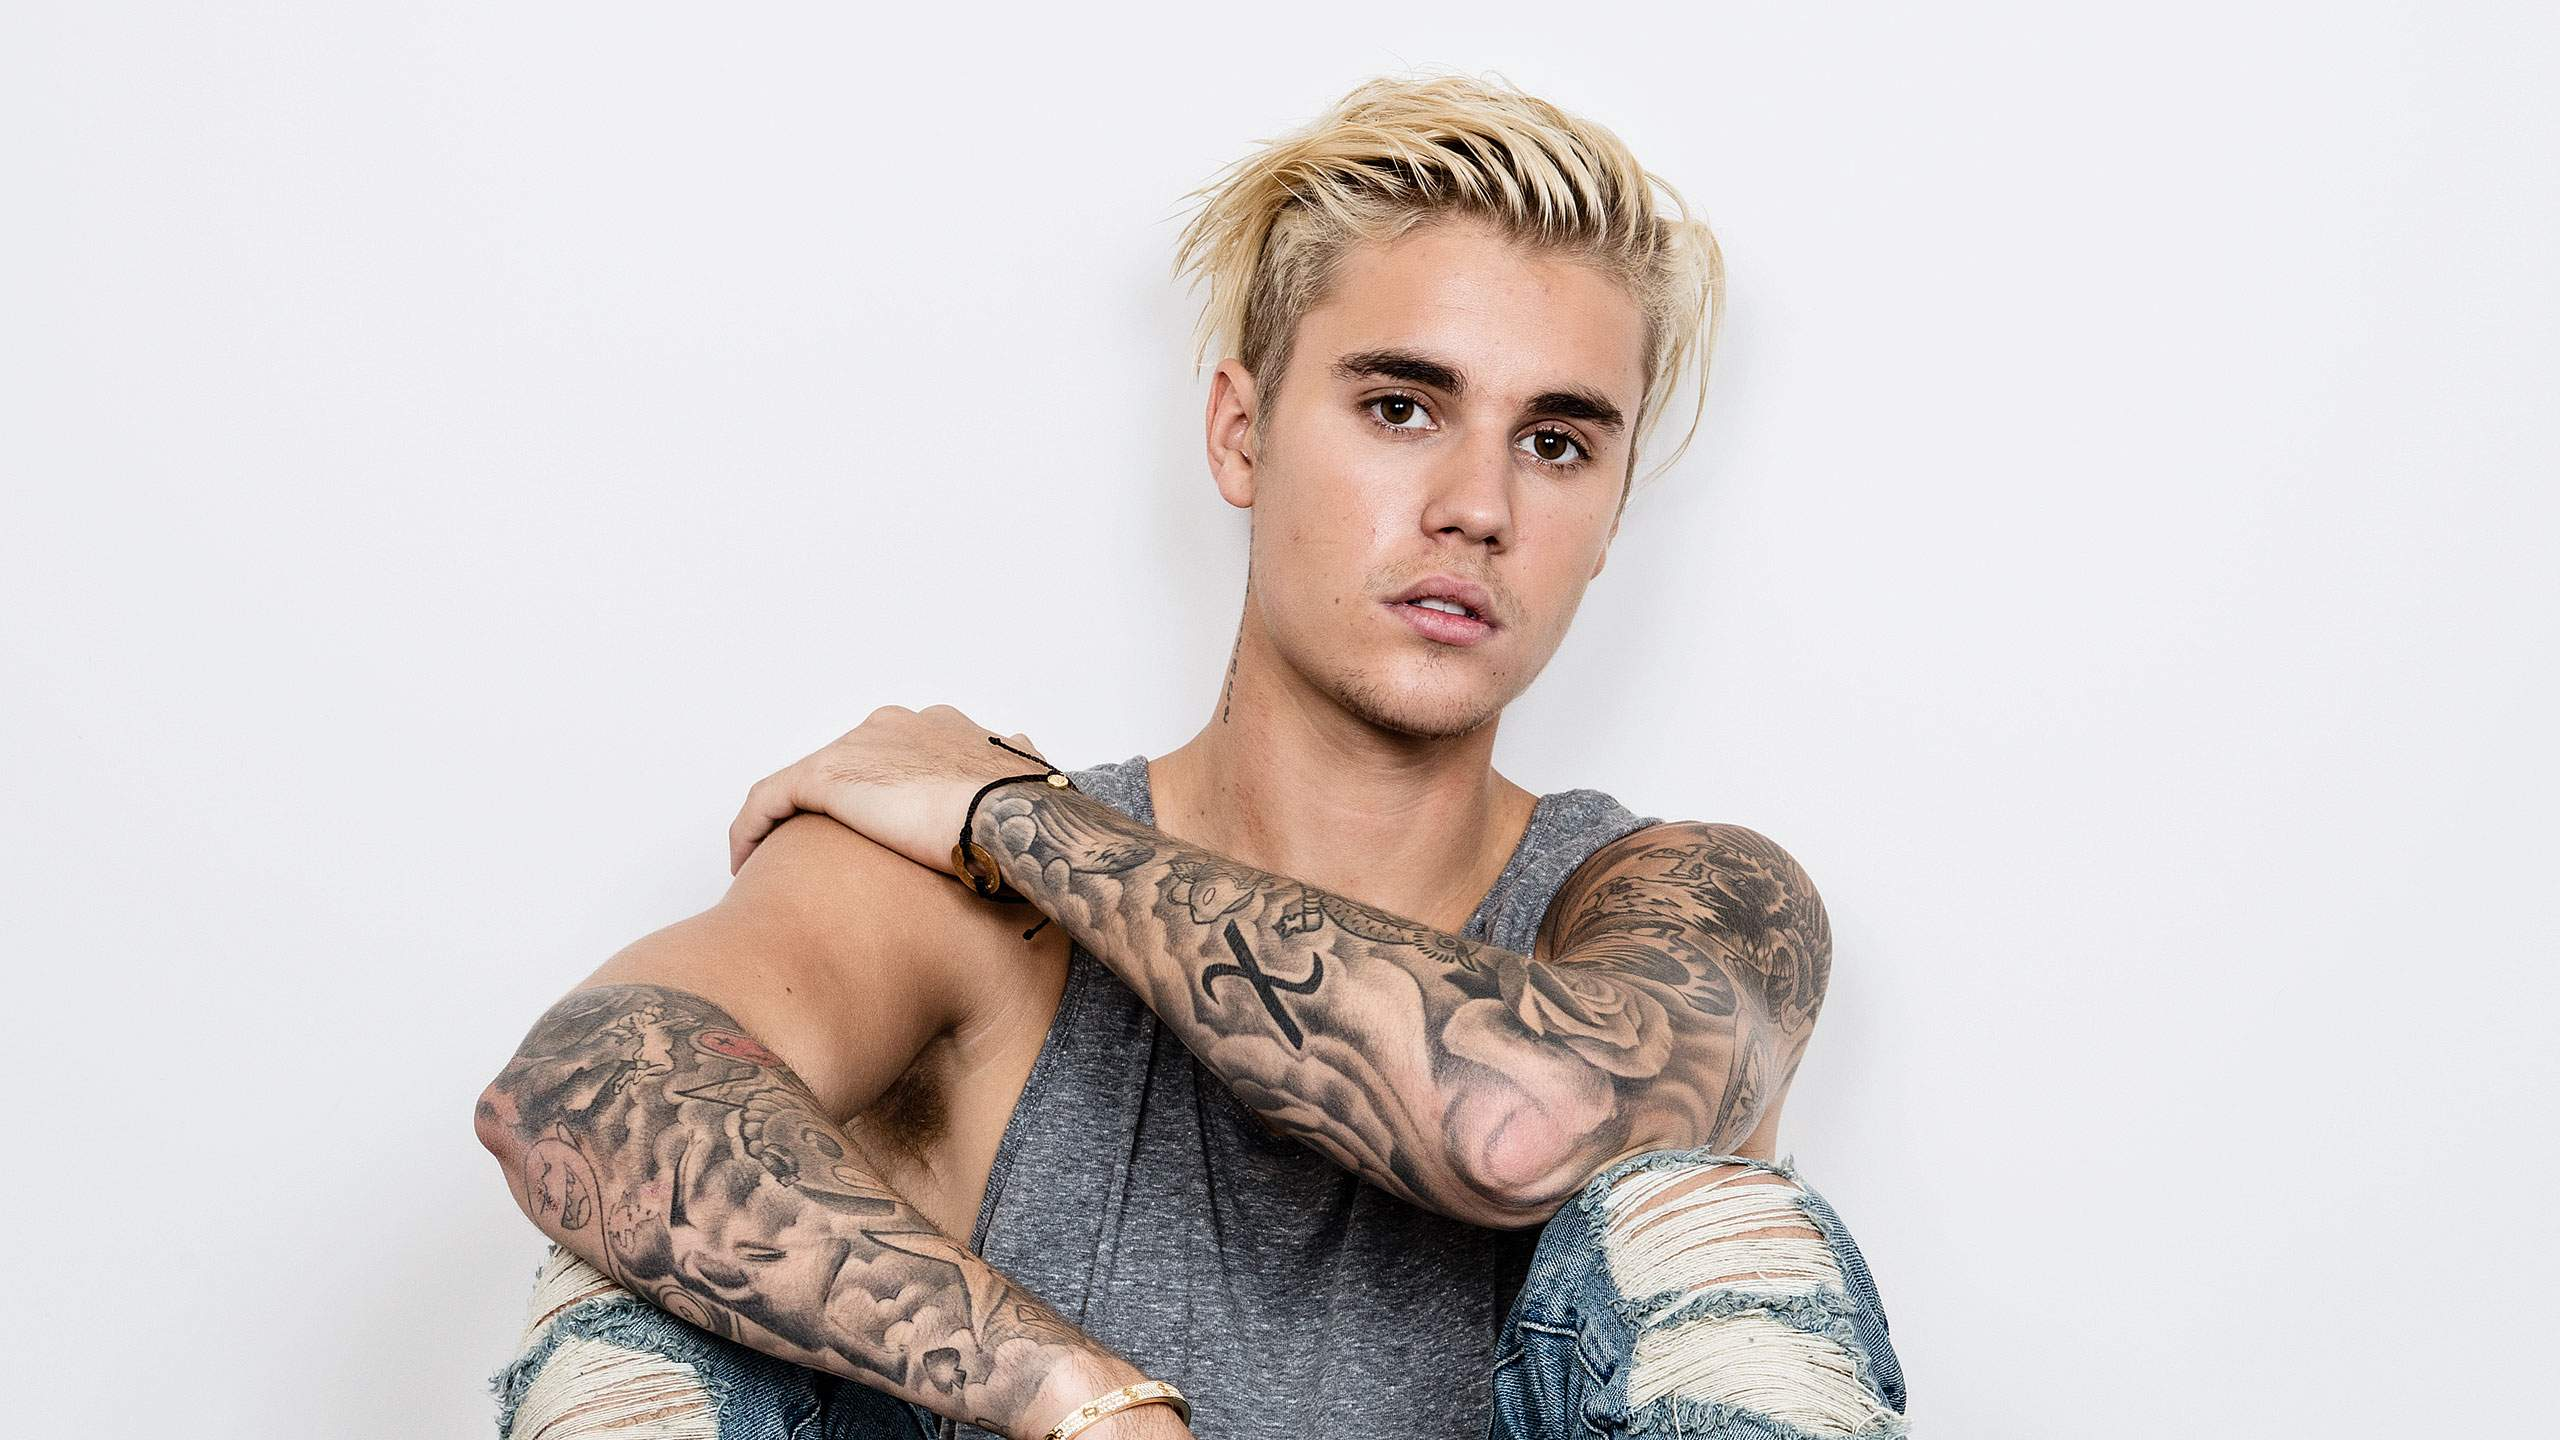 Who is justin beiber dating in Melbourne